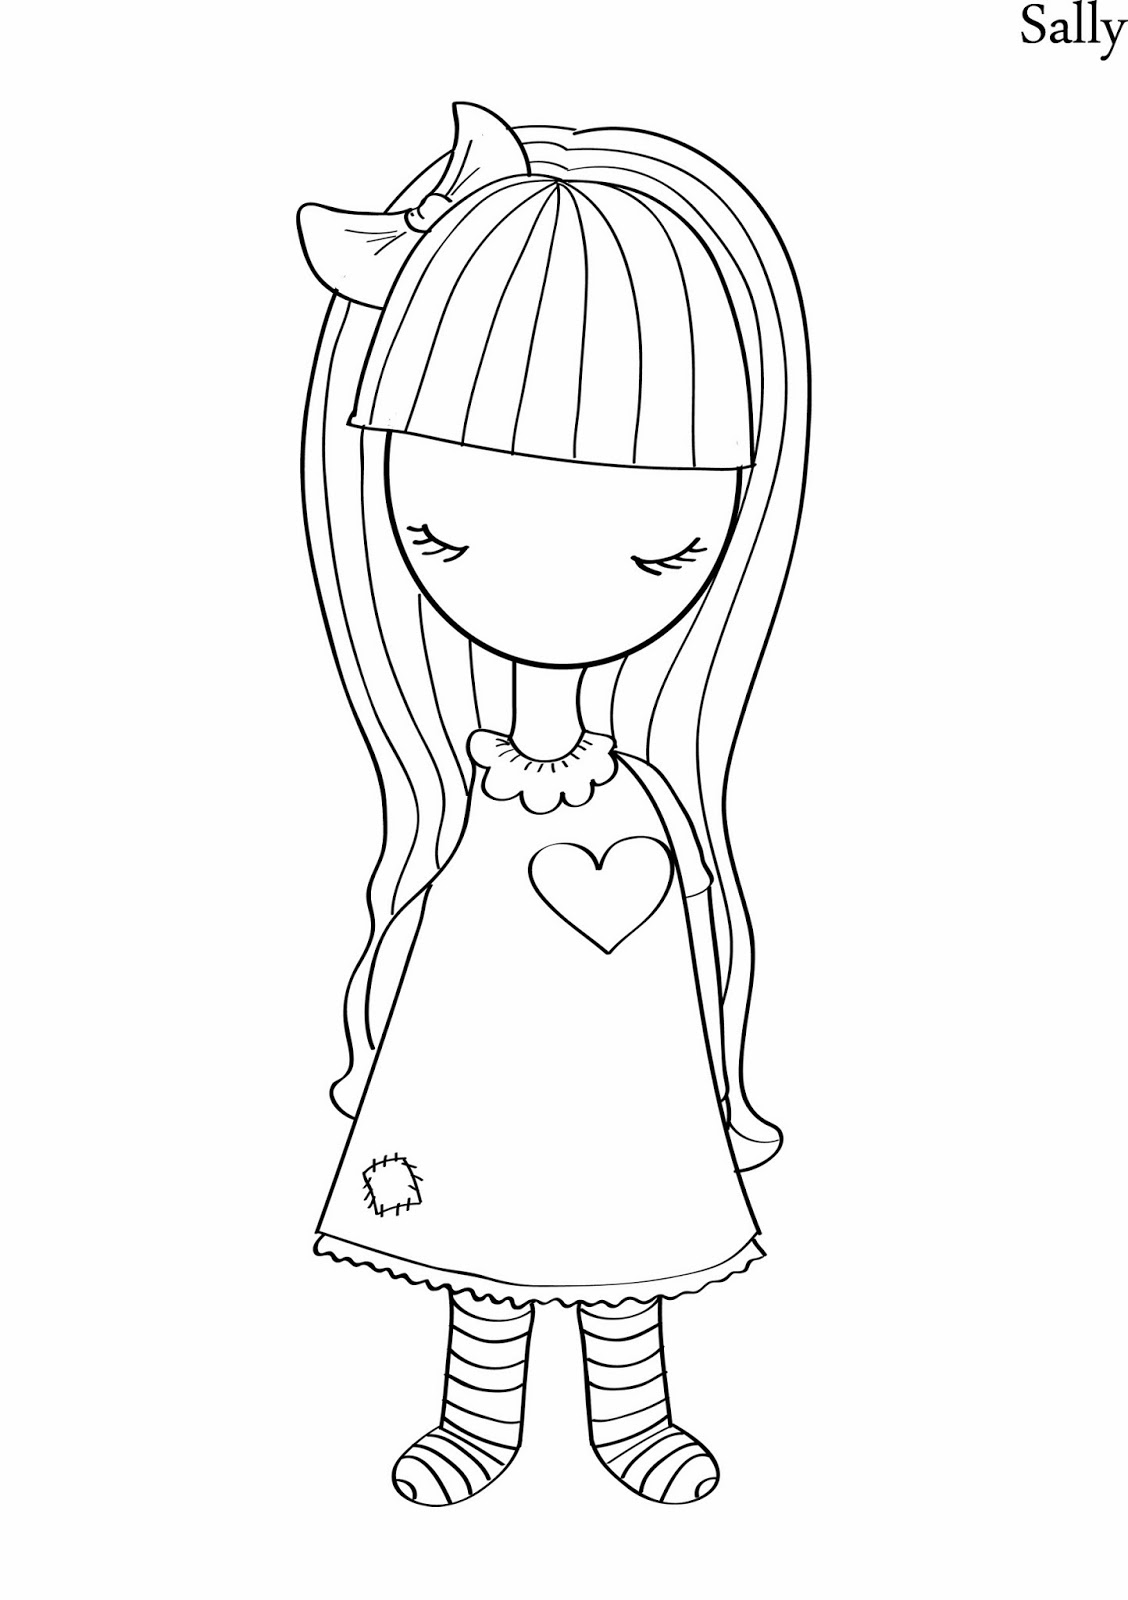 240sx Coloring Page Coloring Pages